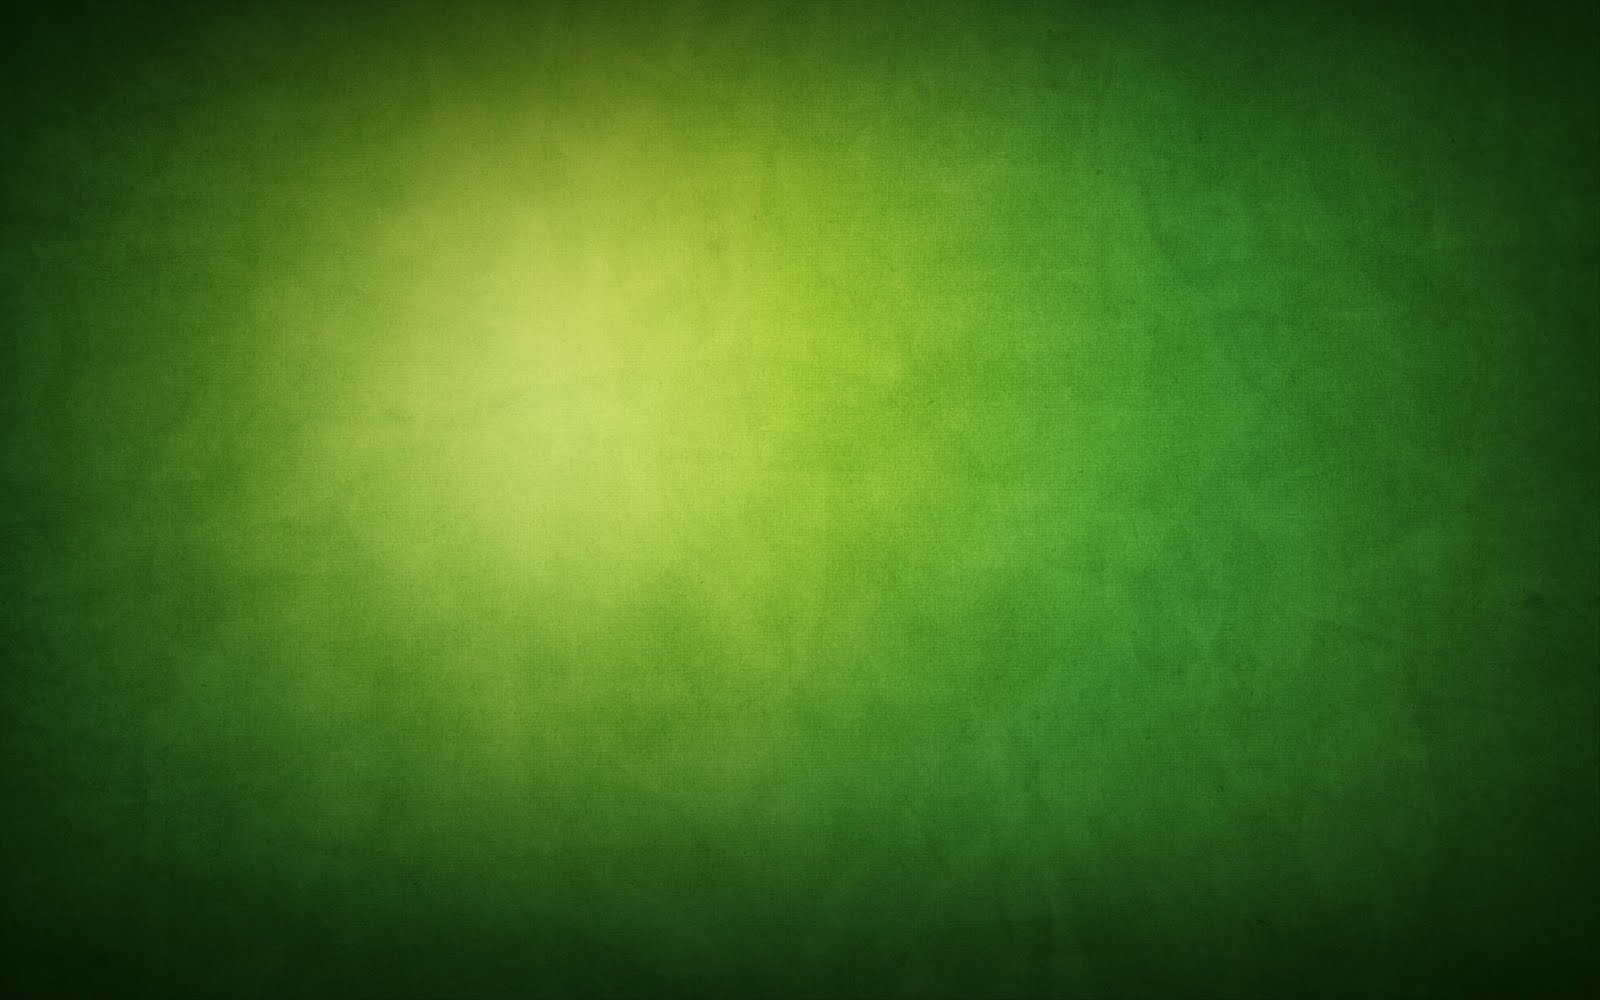 Hd wallpaper green - Download Texture Green Wall Wallpaper 1600x1000 Full Hd Wallpapers